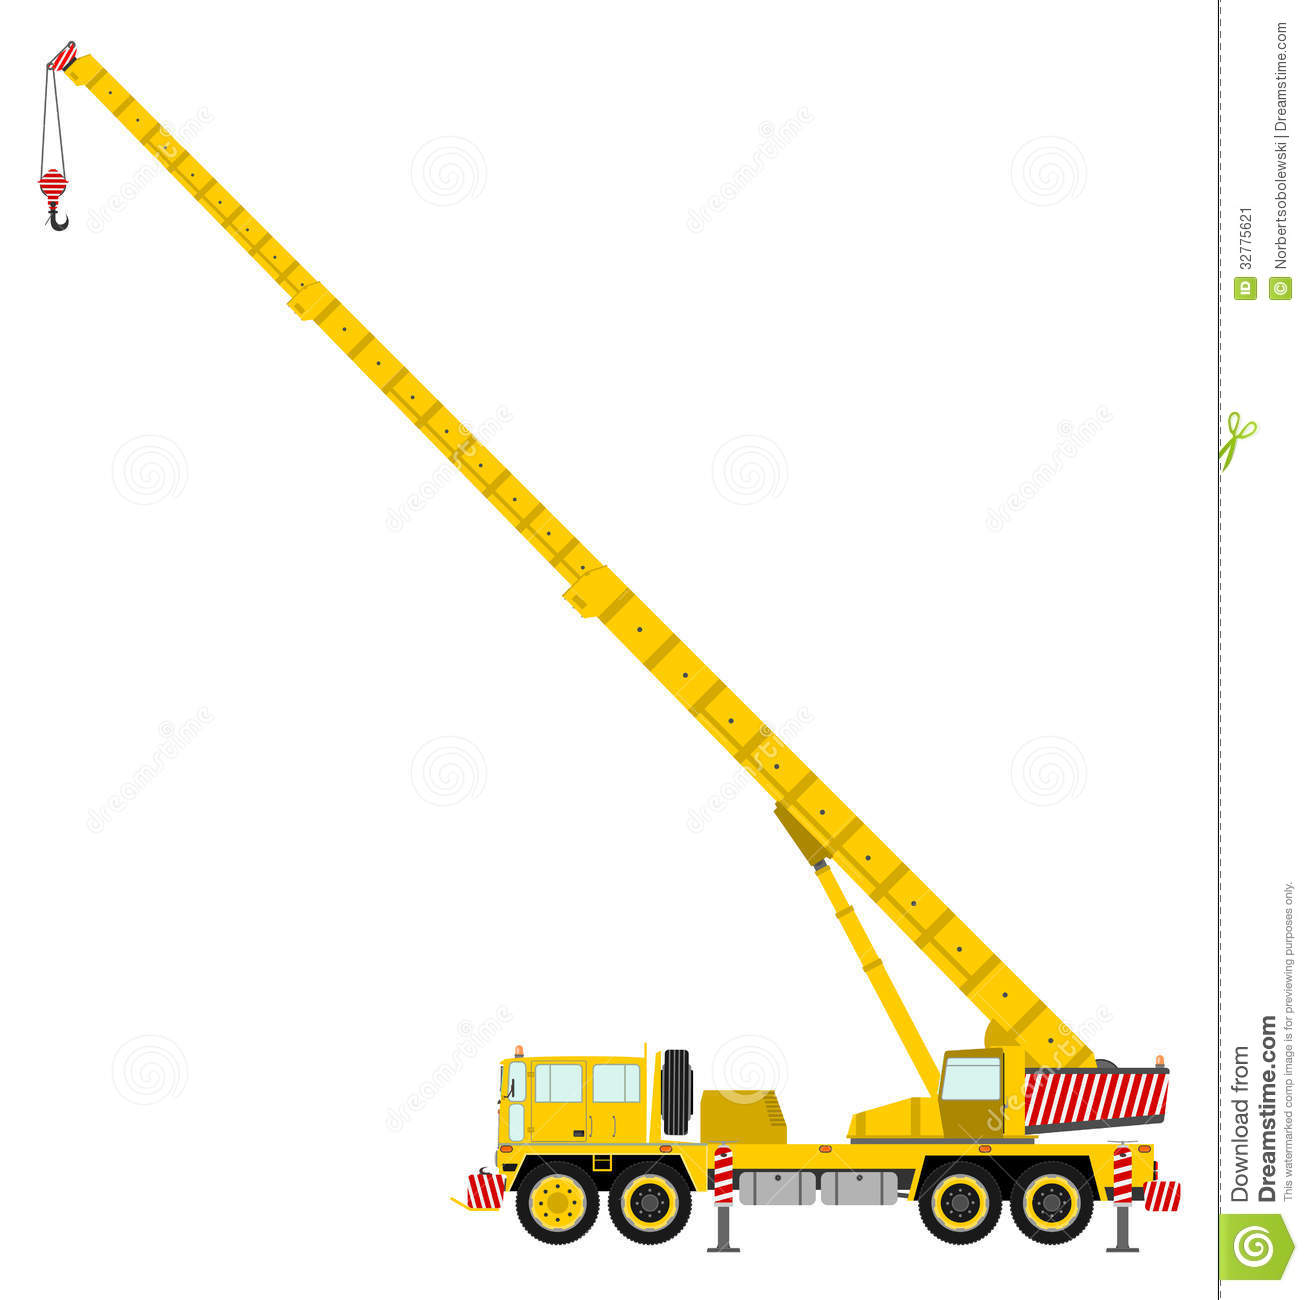 Crane clipart images graphic black and white library Crane clipart free 3 » Clipart Station graphic black and white library